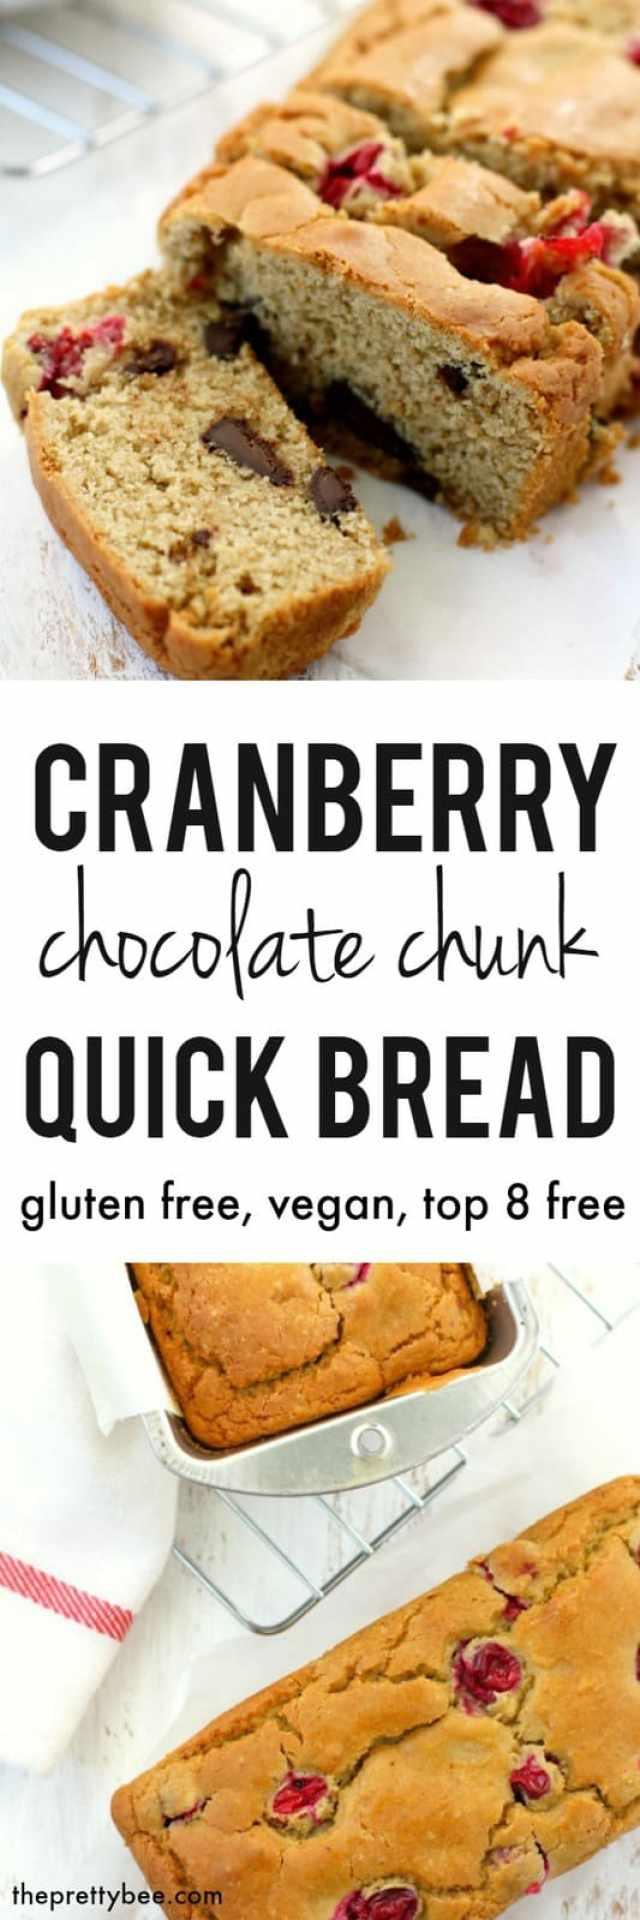 gluten free cranberry chocolate chip quick bread